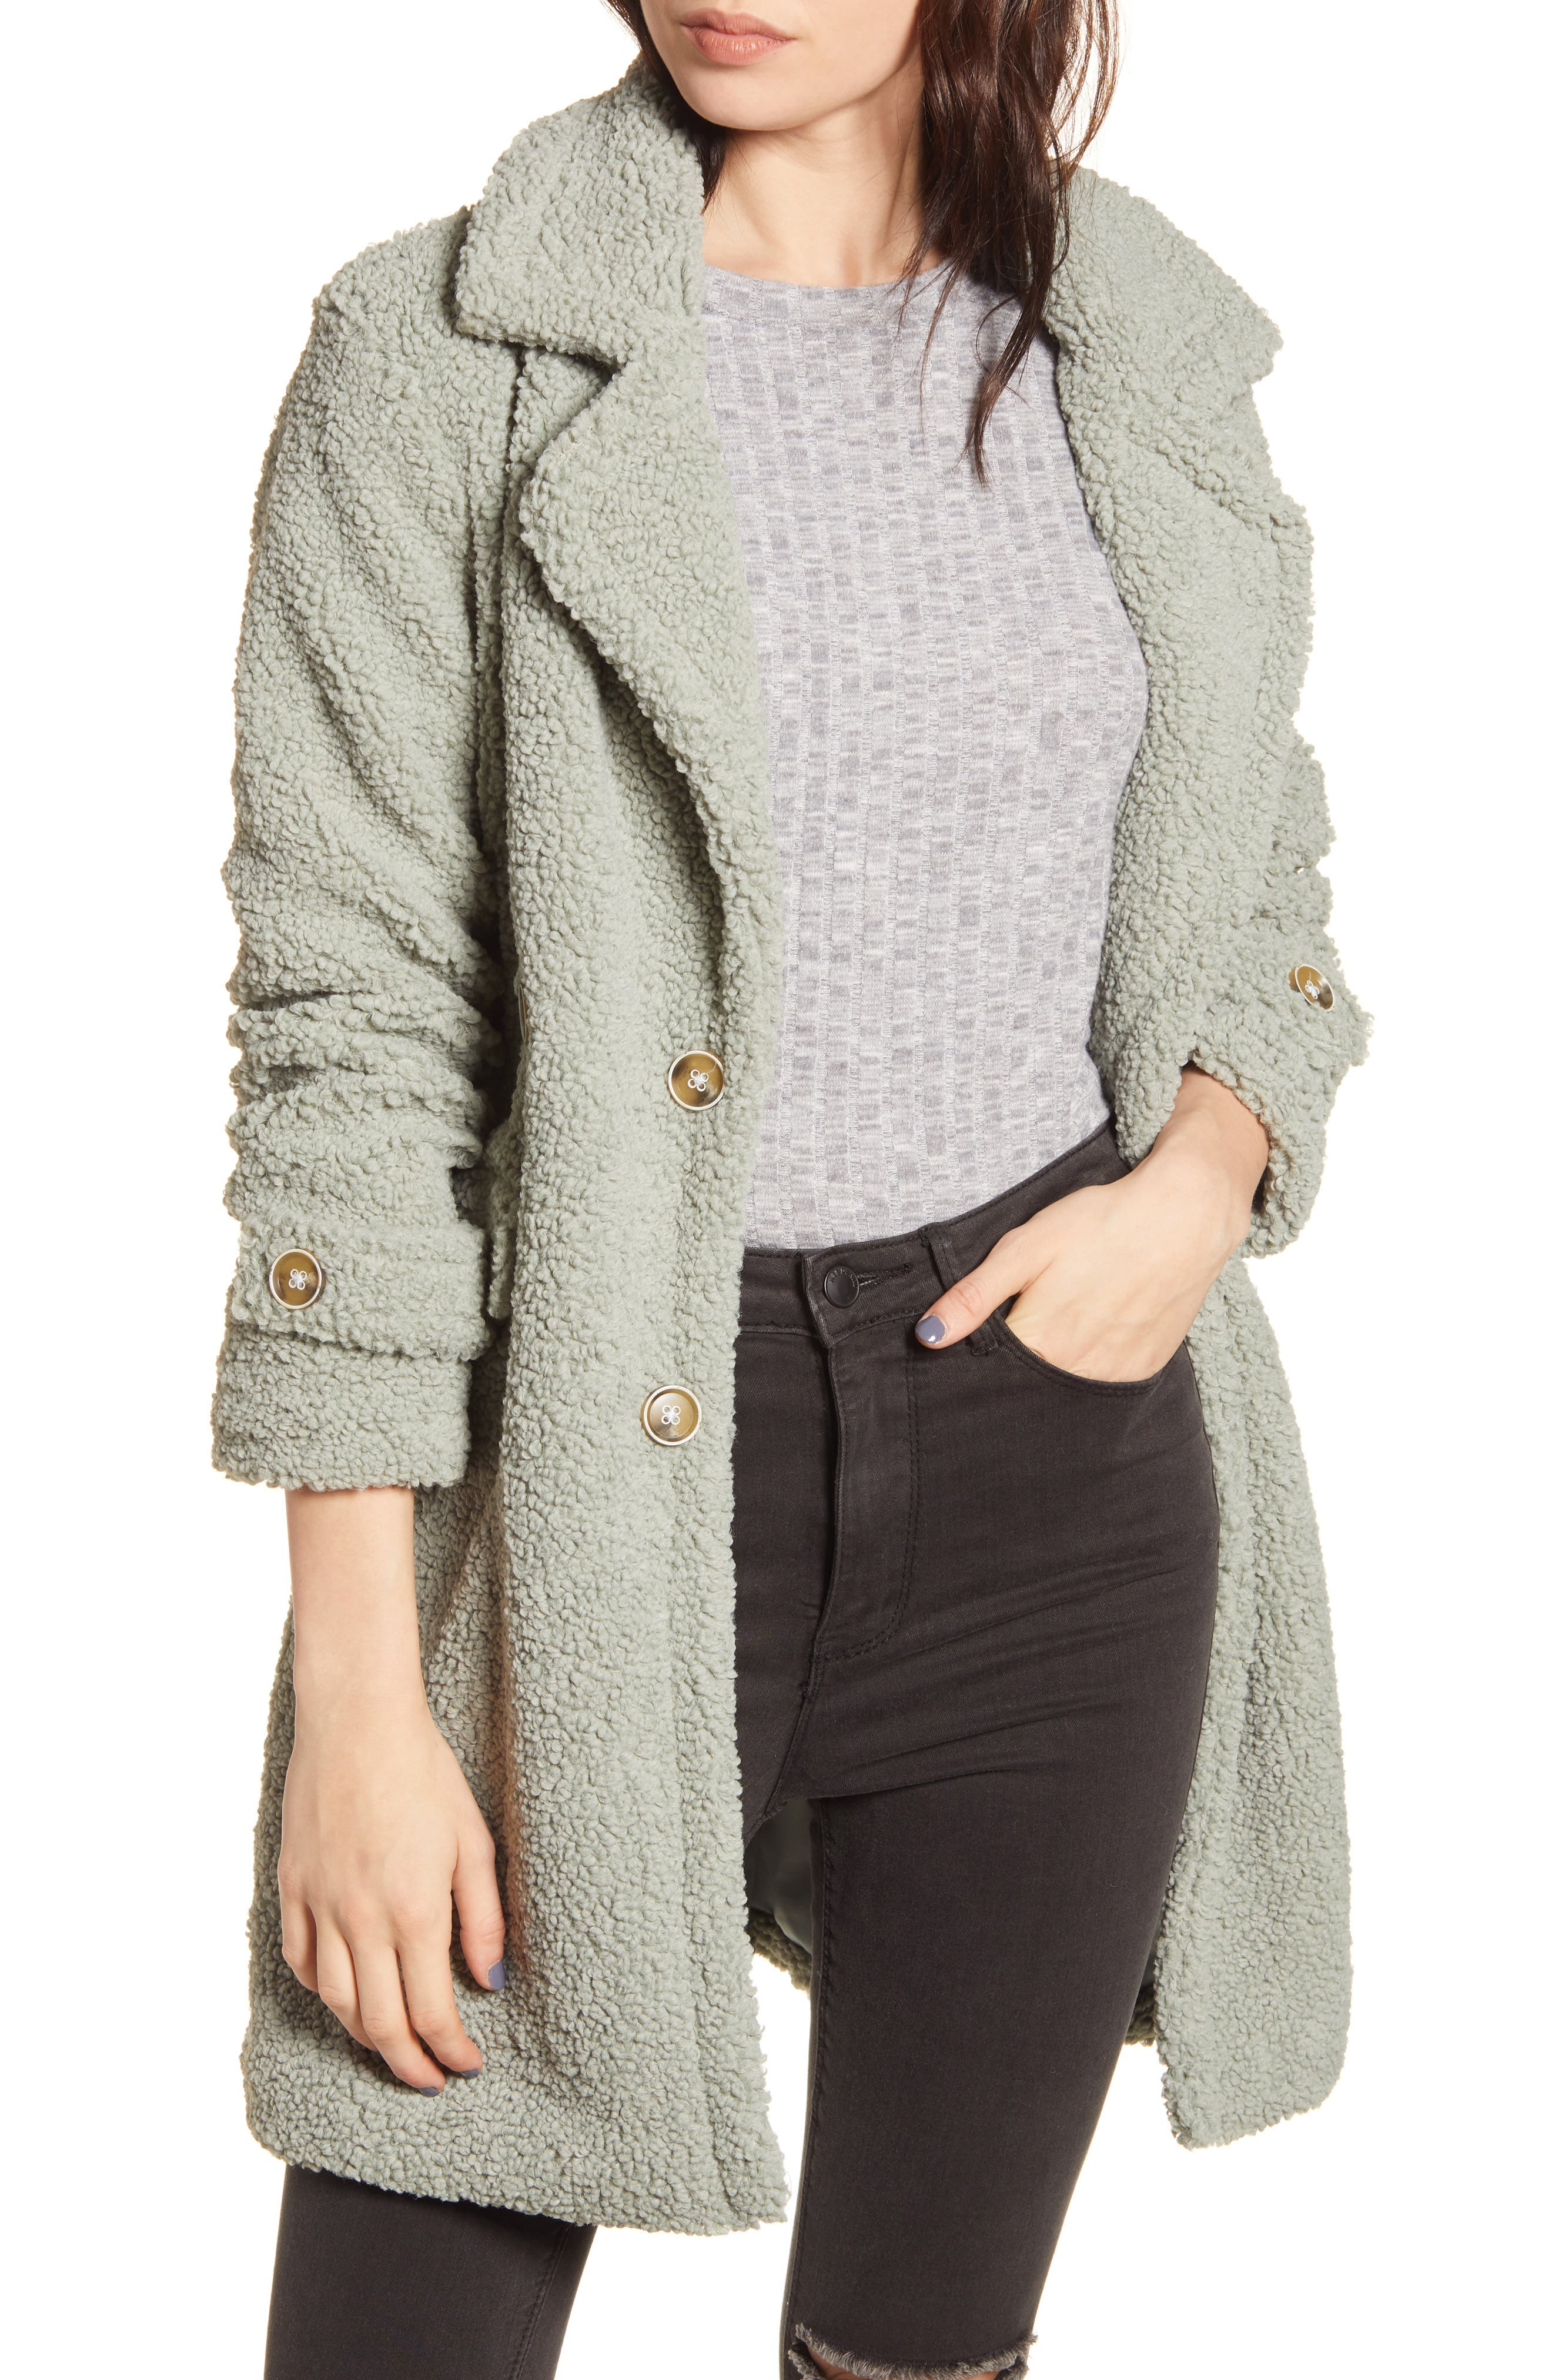 Woven Heart Faux Shearling Teddy Trench Coat